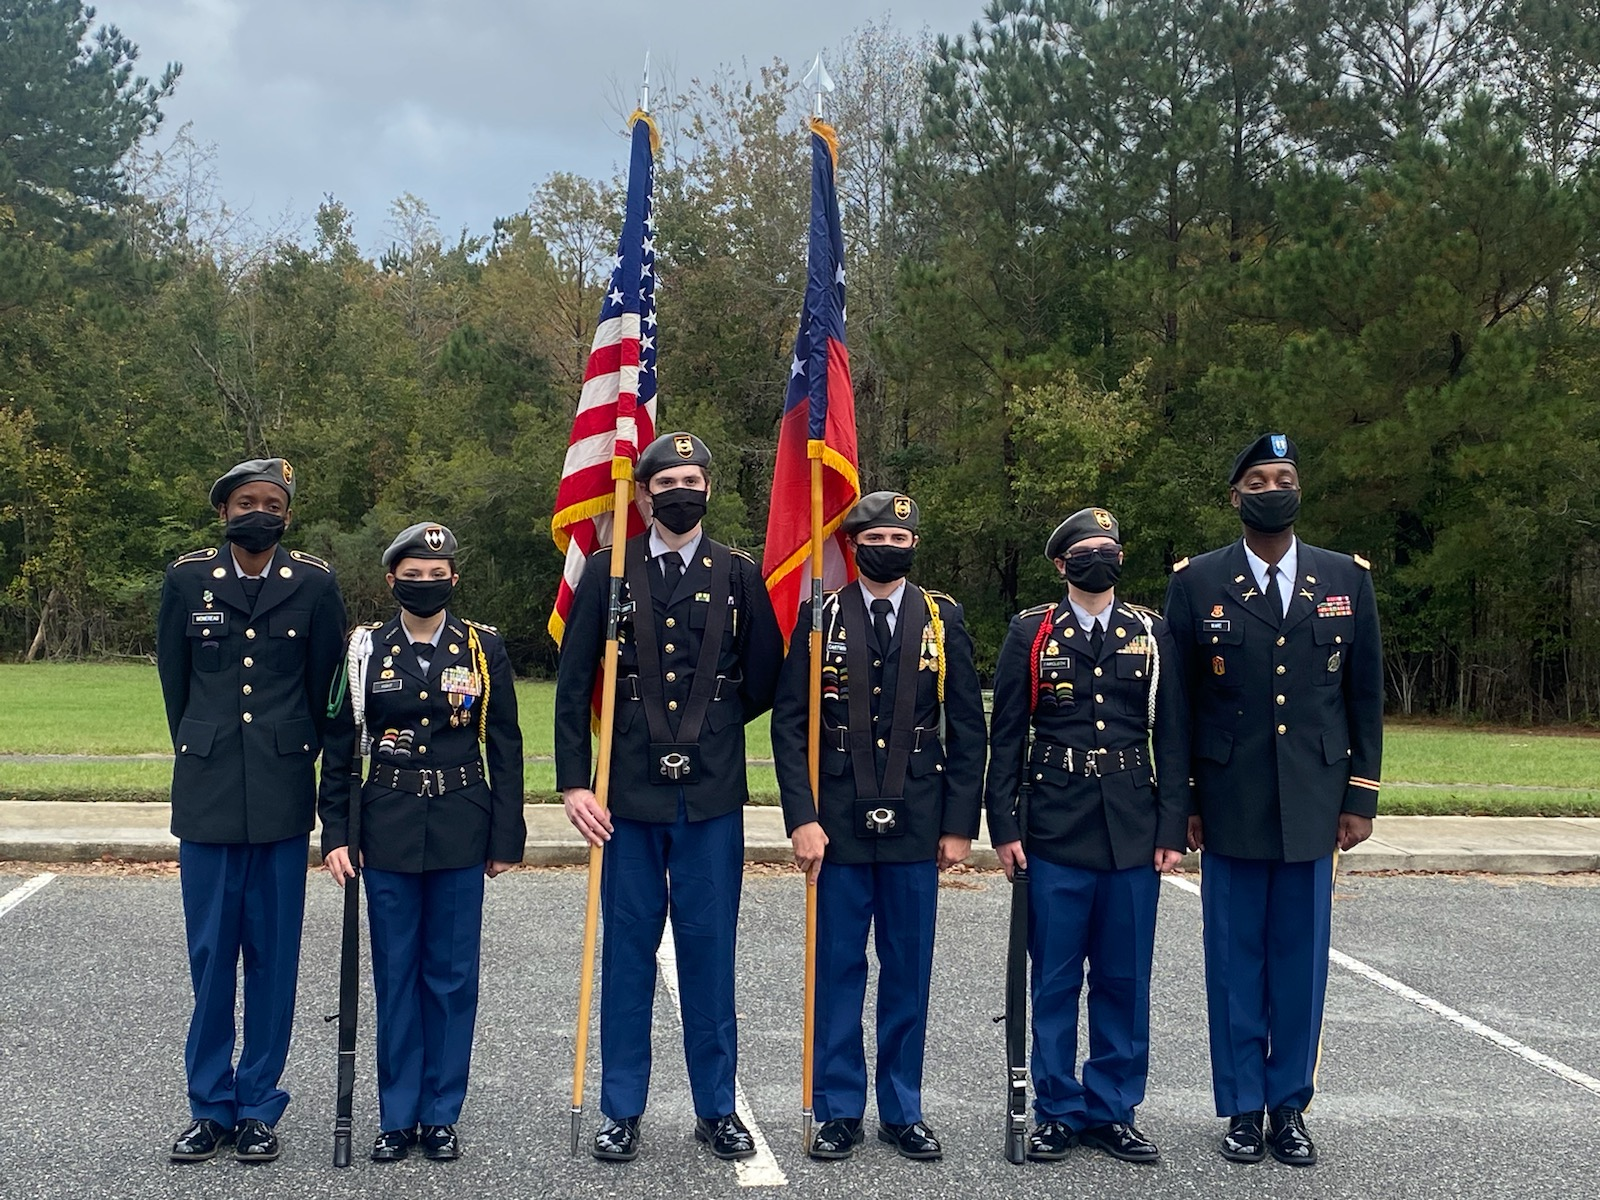 Jr ROTC Thunderbolt Regiment